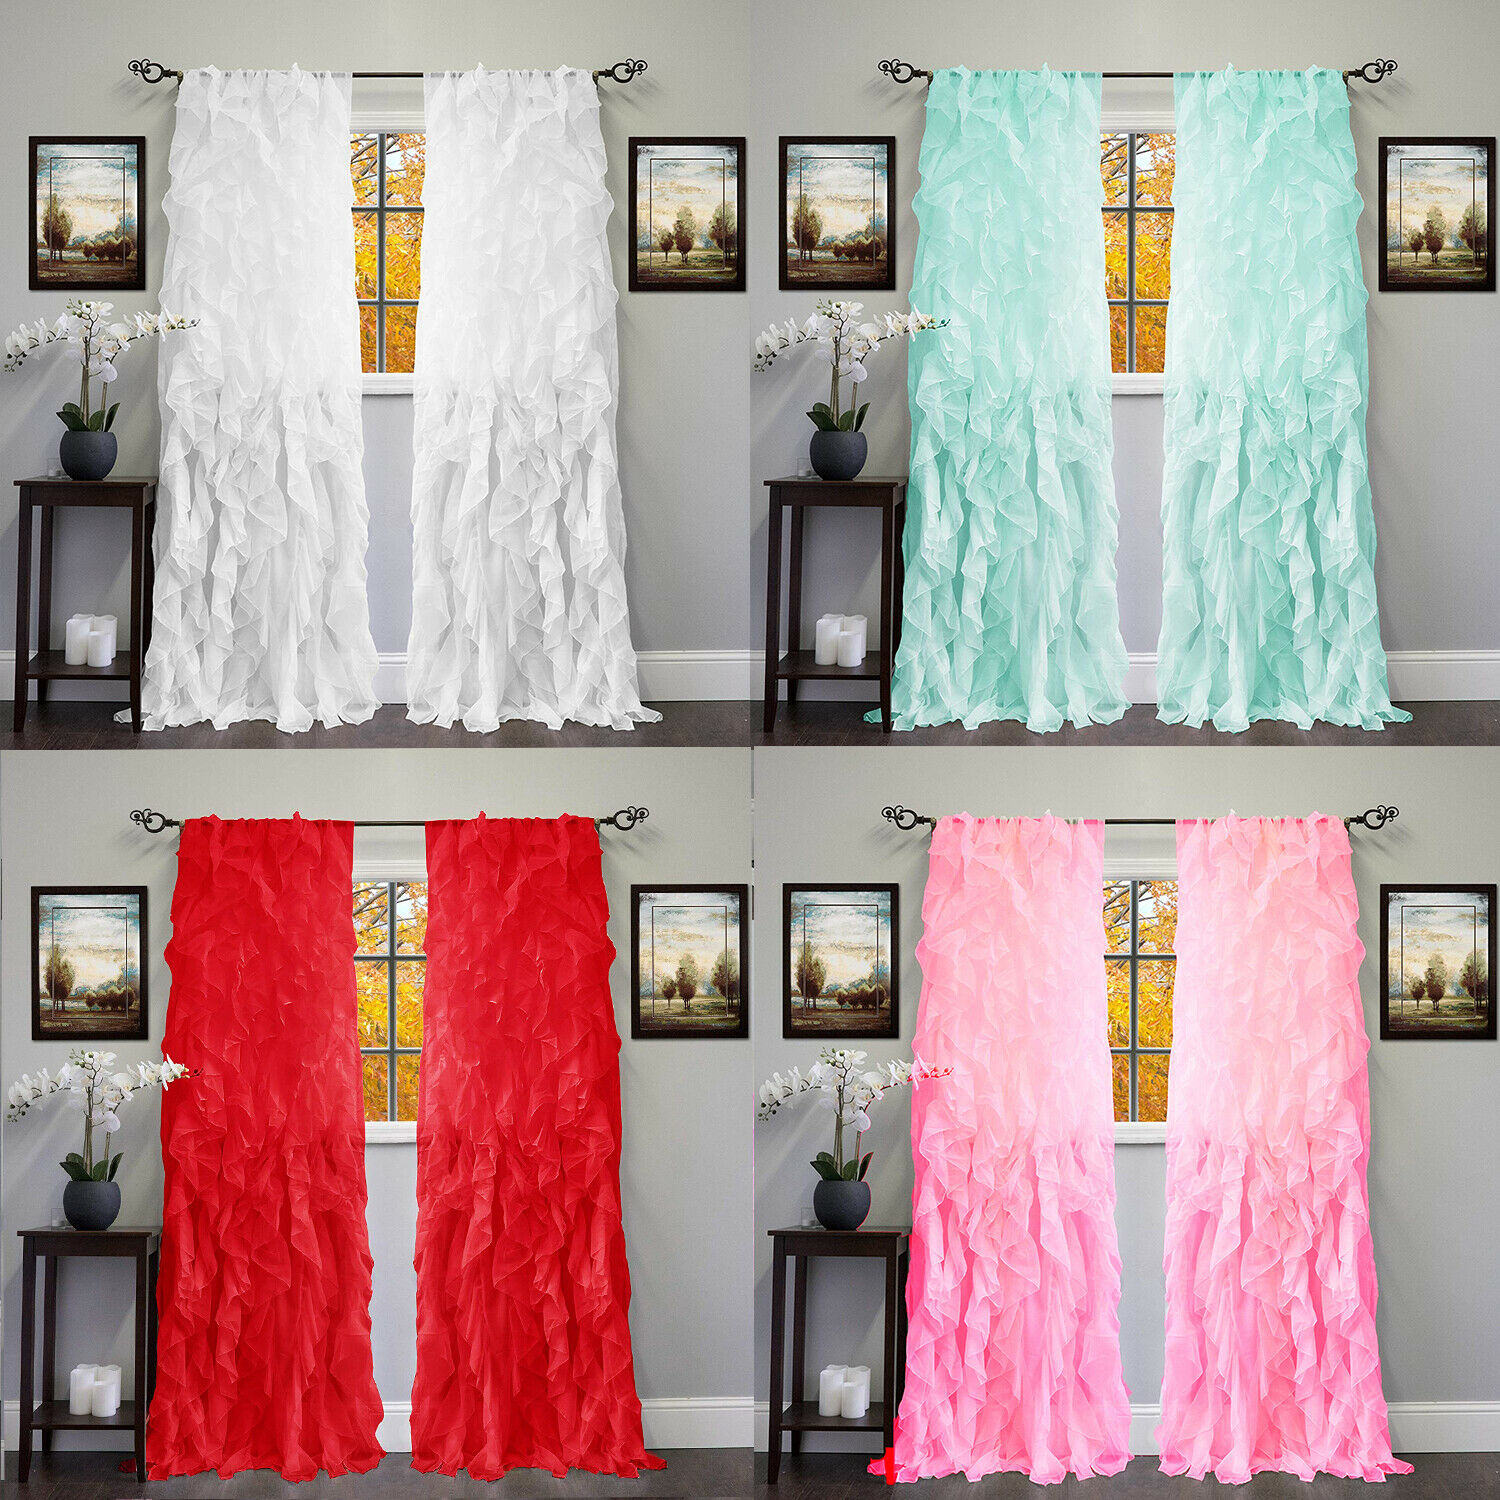 2pc Cascade Shabby Chic Sheer Ruffled Curtain Panel Throughout Sheer Voile Waterfall Ruffled Tier Single Curtain Panels (View 8 of 20)